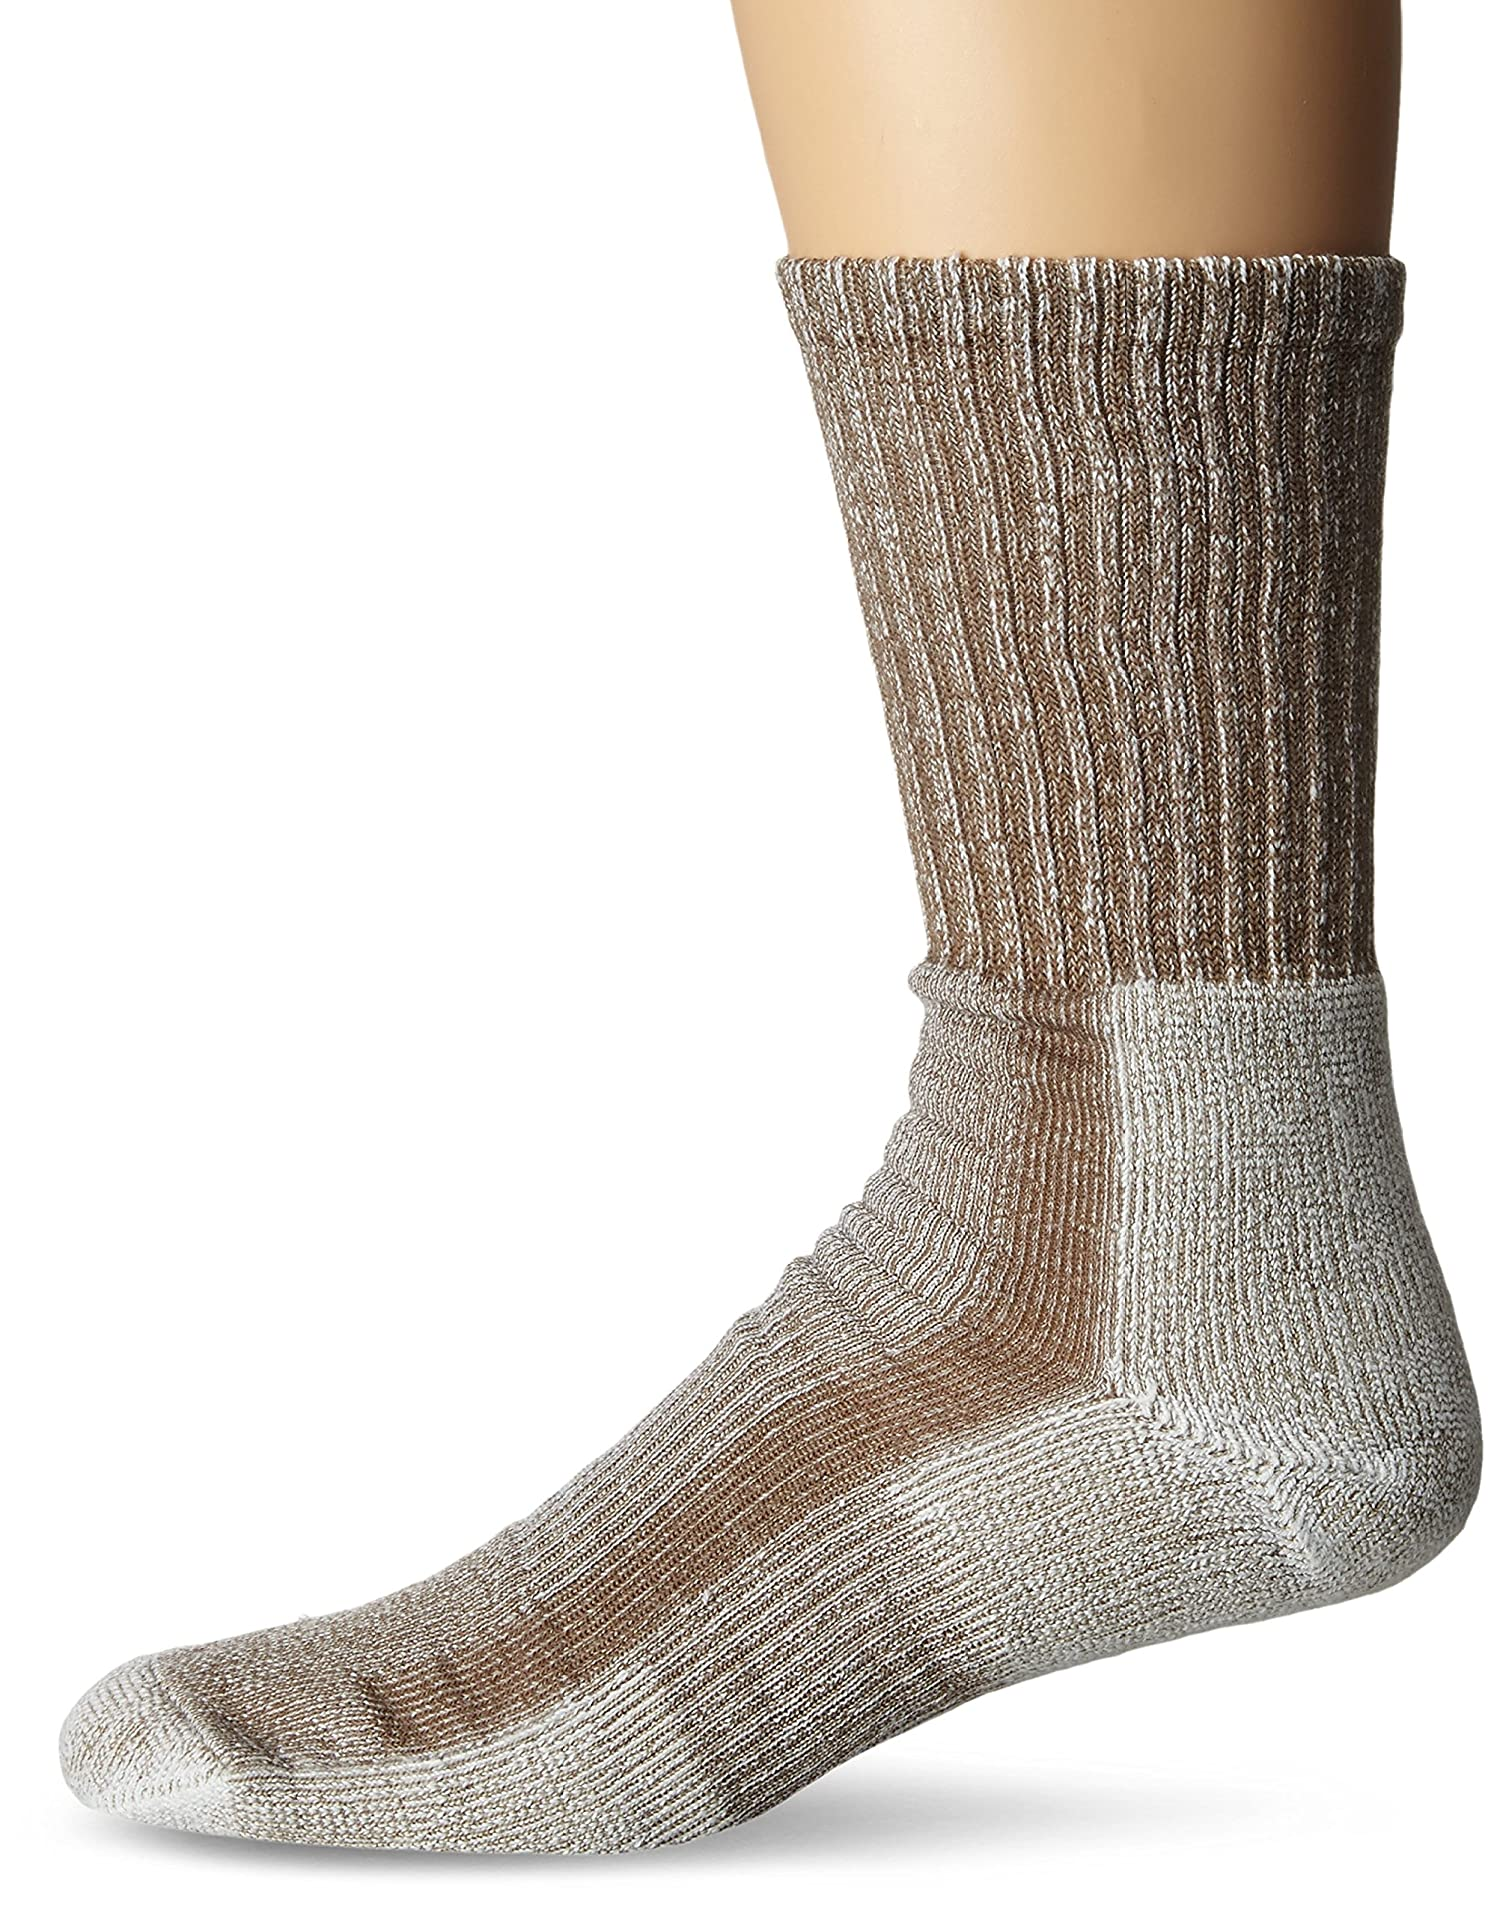 Thorlo's Hiking Padded Crew Socks